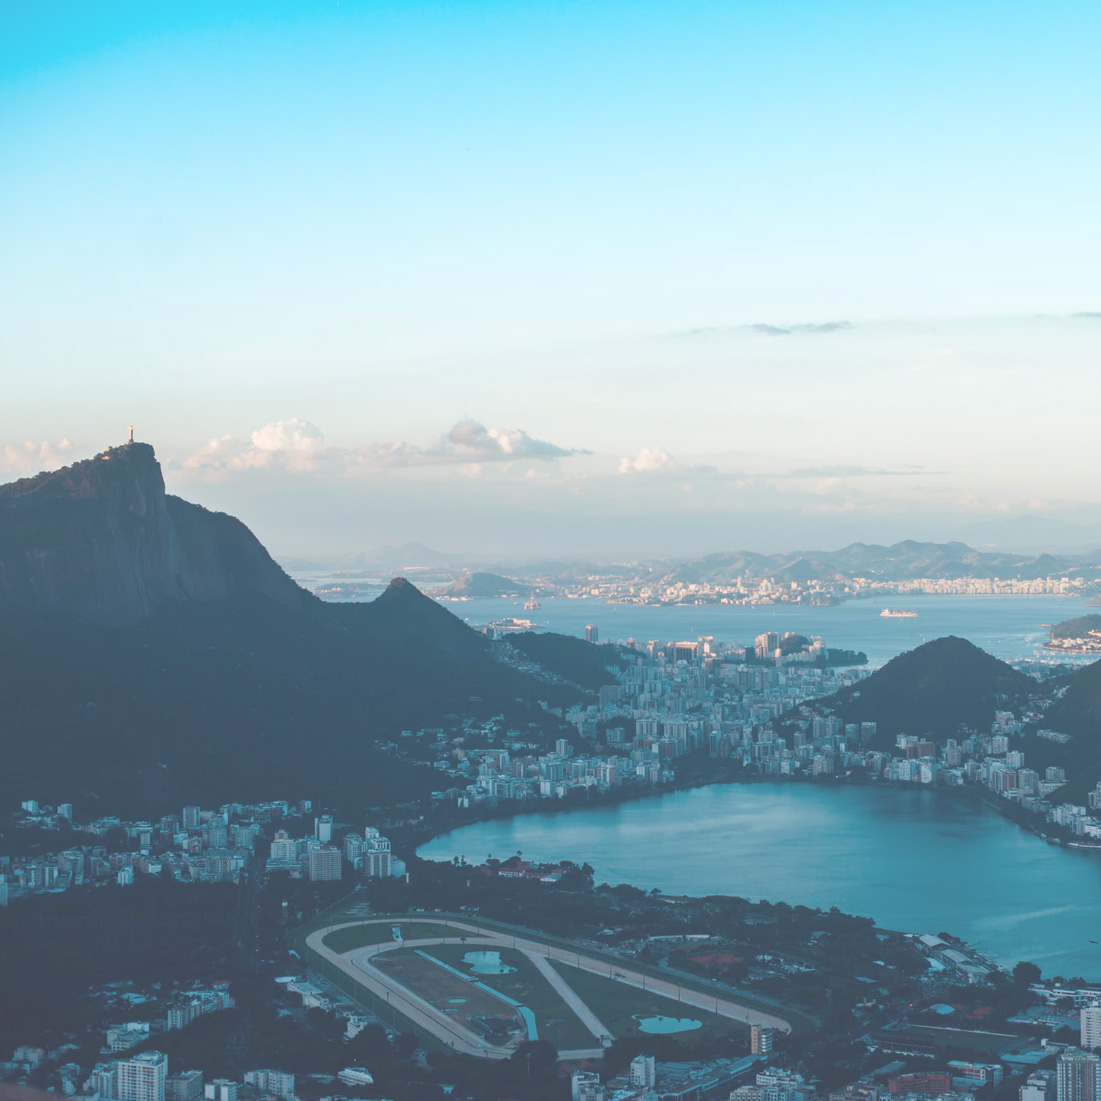 Rio de Janeiro   + February 20.-21. 2019 + August 2019 (Dates TBA)   Link to our local partner site